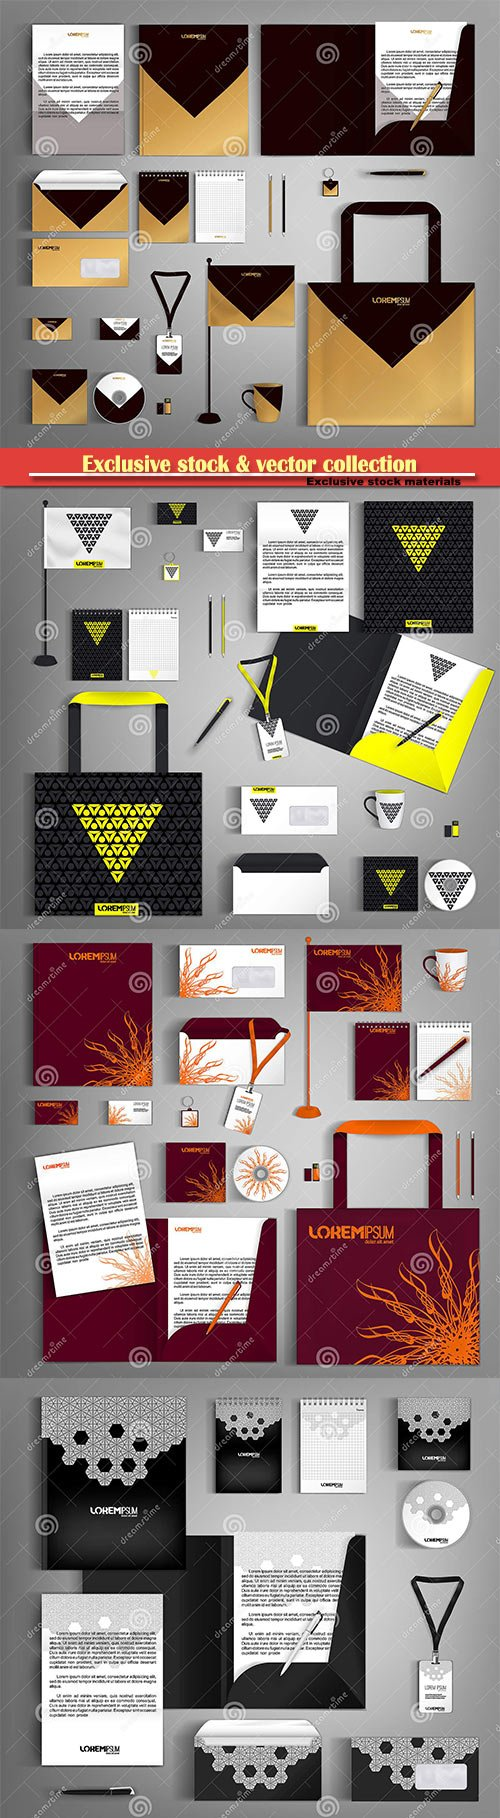 Vector template business design set of stationery, corporate identity